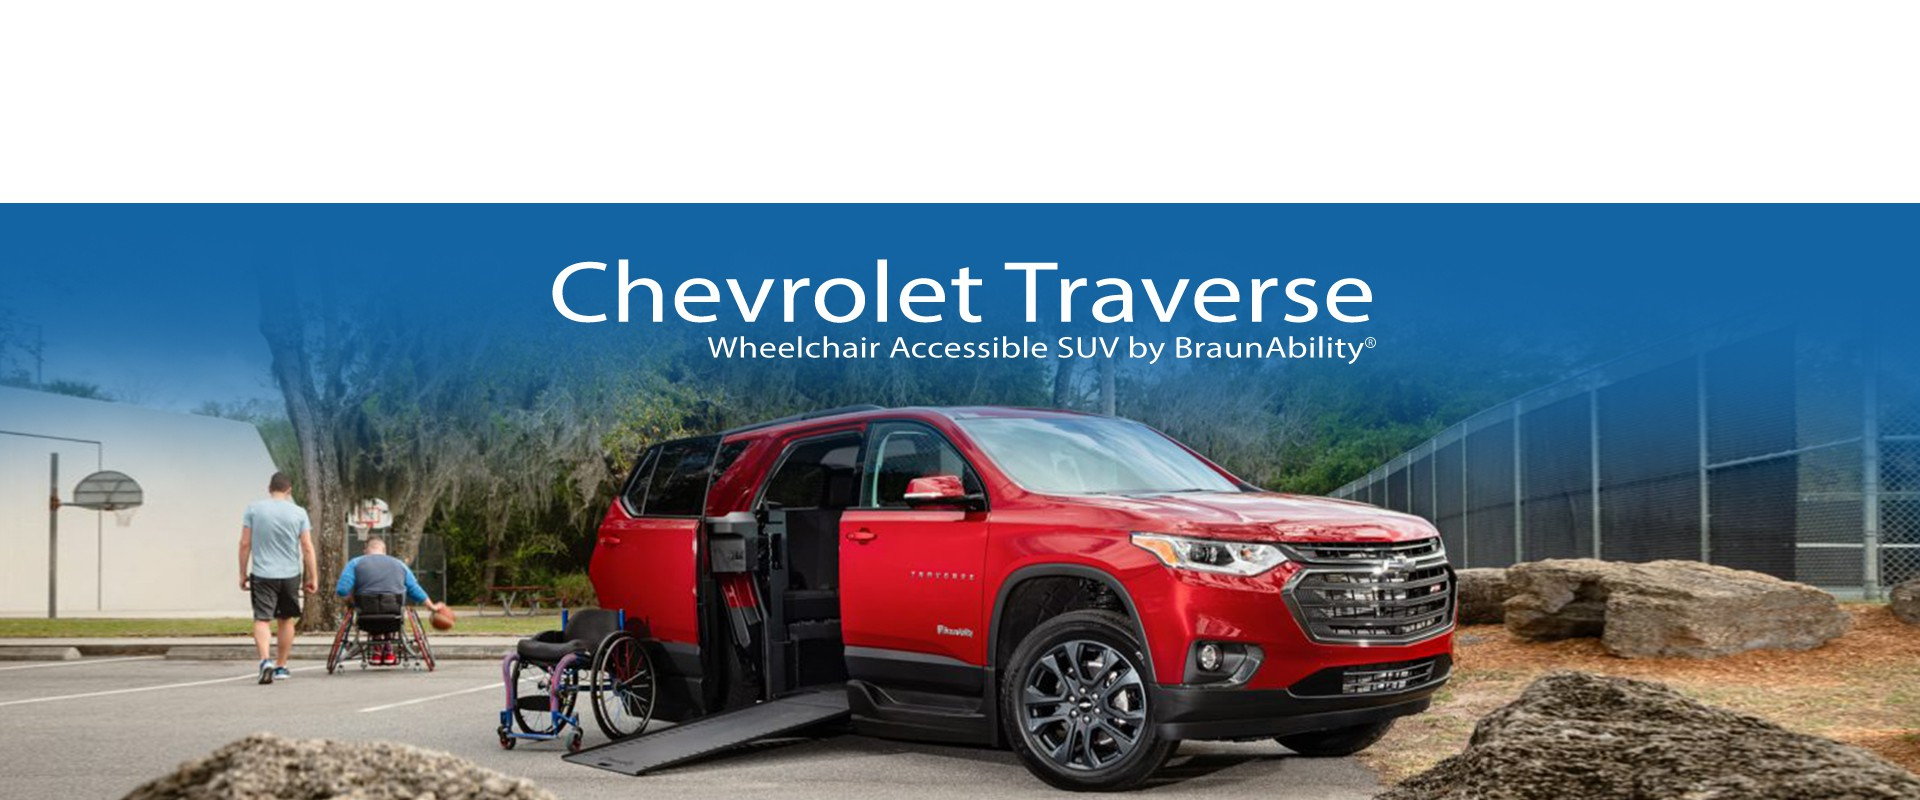 All New Wheelchair Accessible Chevrolet Traverse The Gulf Coast